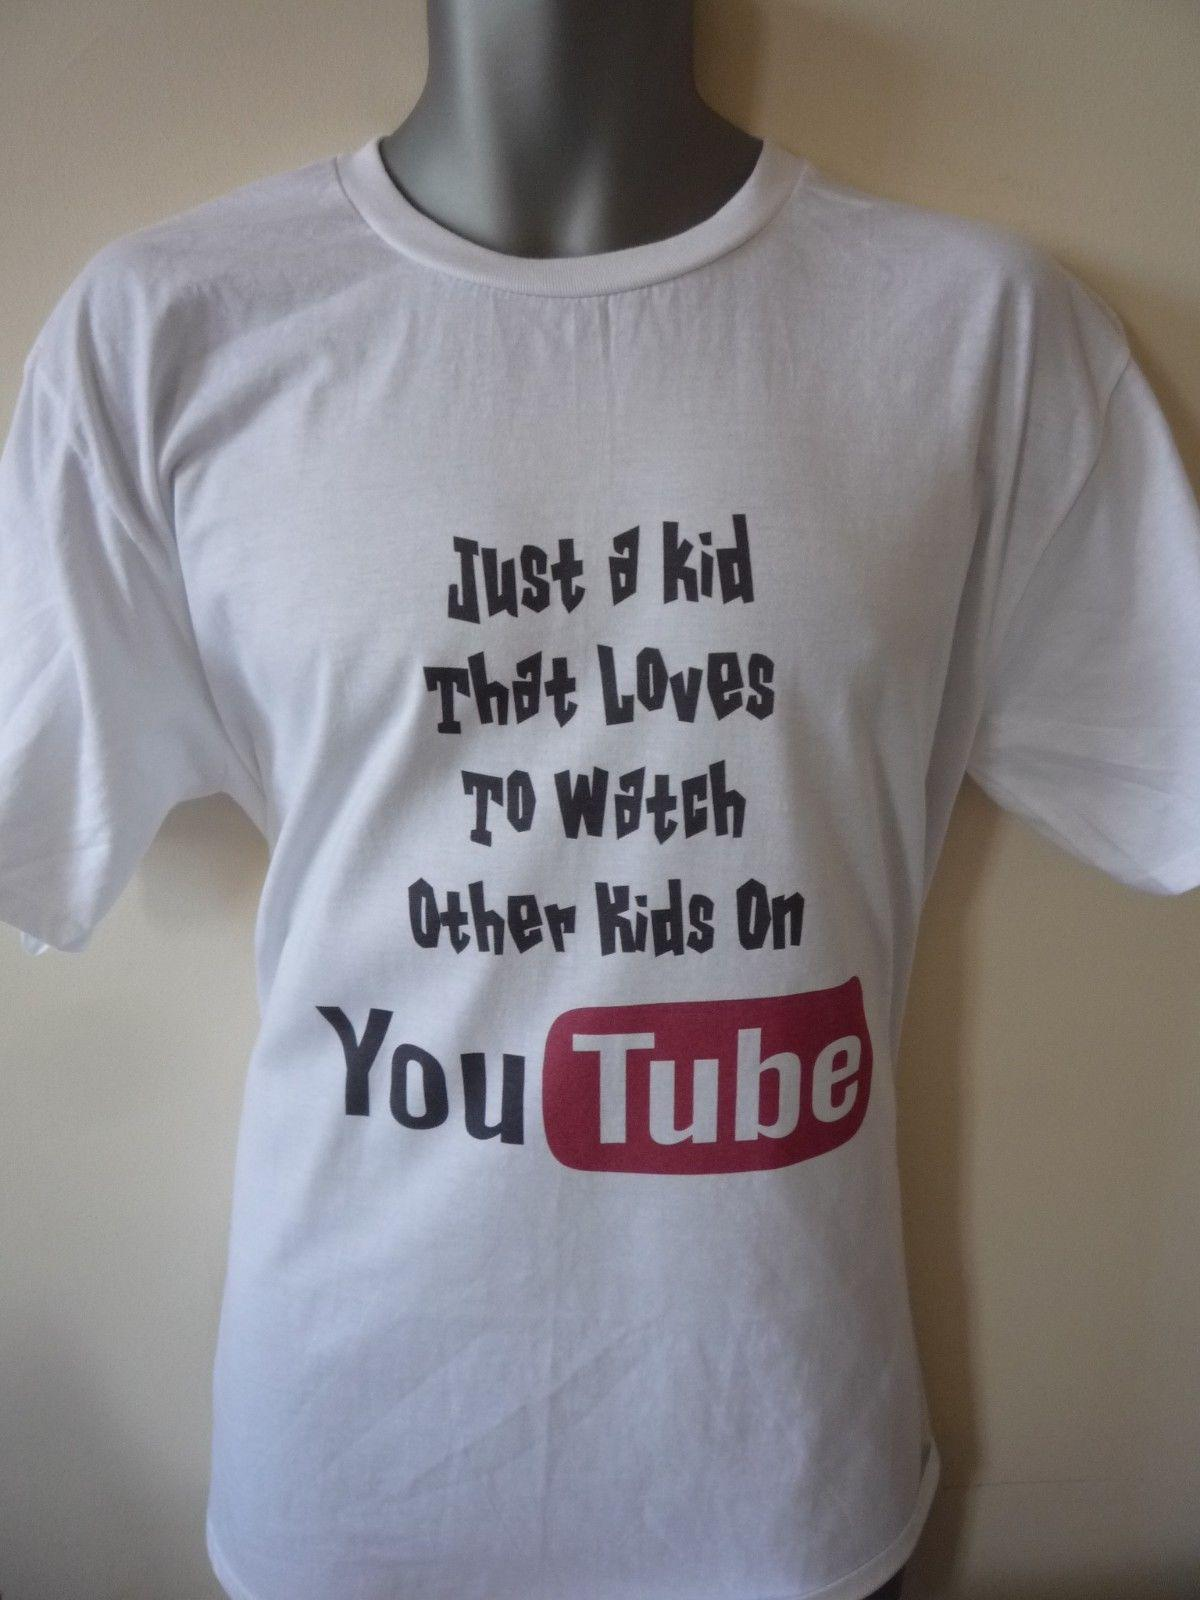 dce7326208 JUST A KID WHO LOVES TO WATCH OTHER KIDS ON YOUTUBE KIDS ADULT T SHIRT  GAMING Funny Casual Tshirt Top Shirt And Tshirt Create Your Own T Shirt  Design From ...